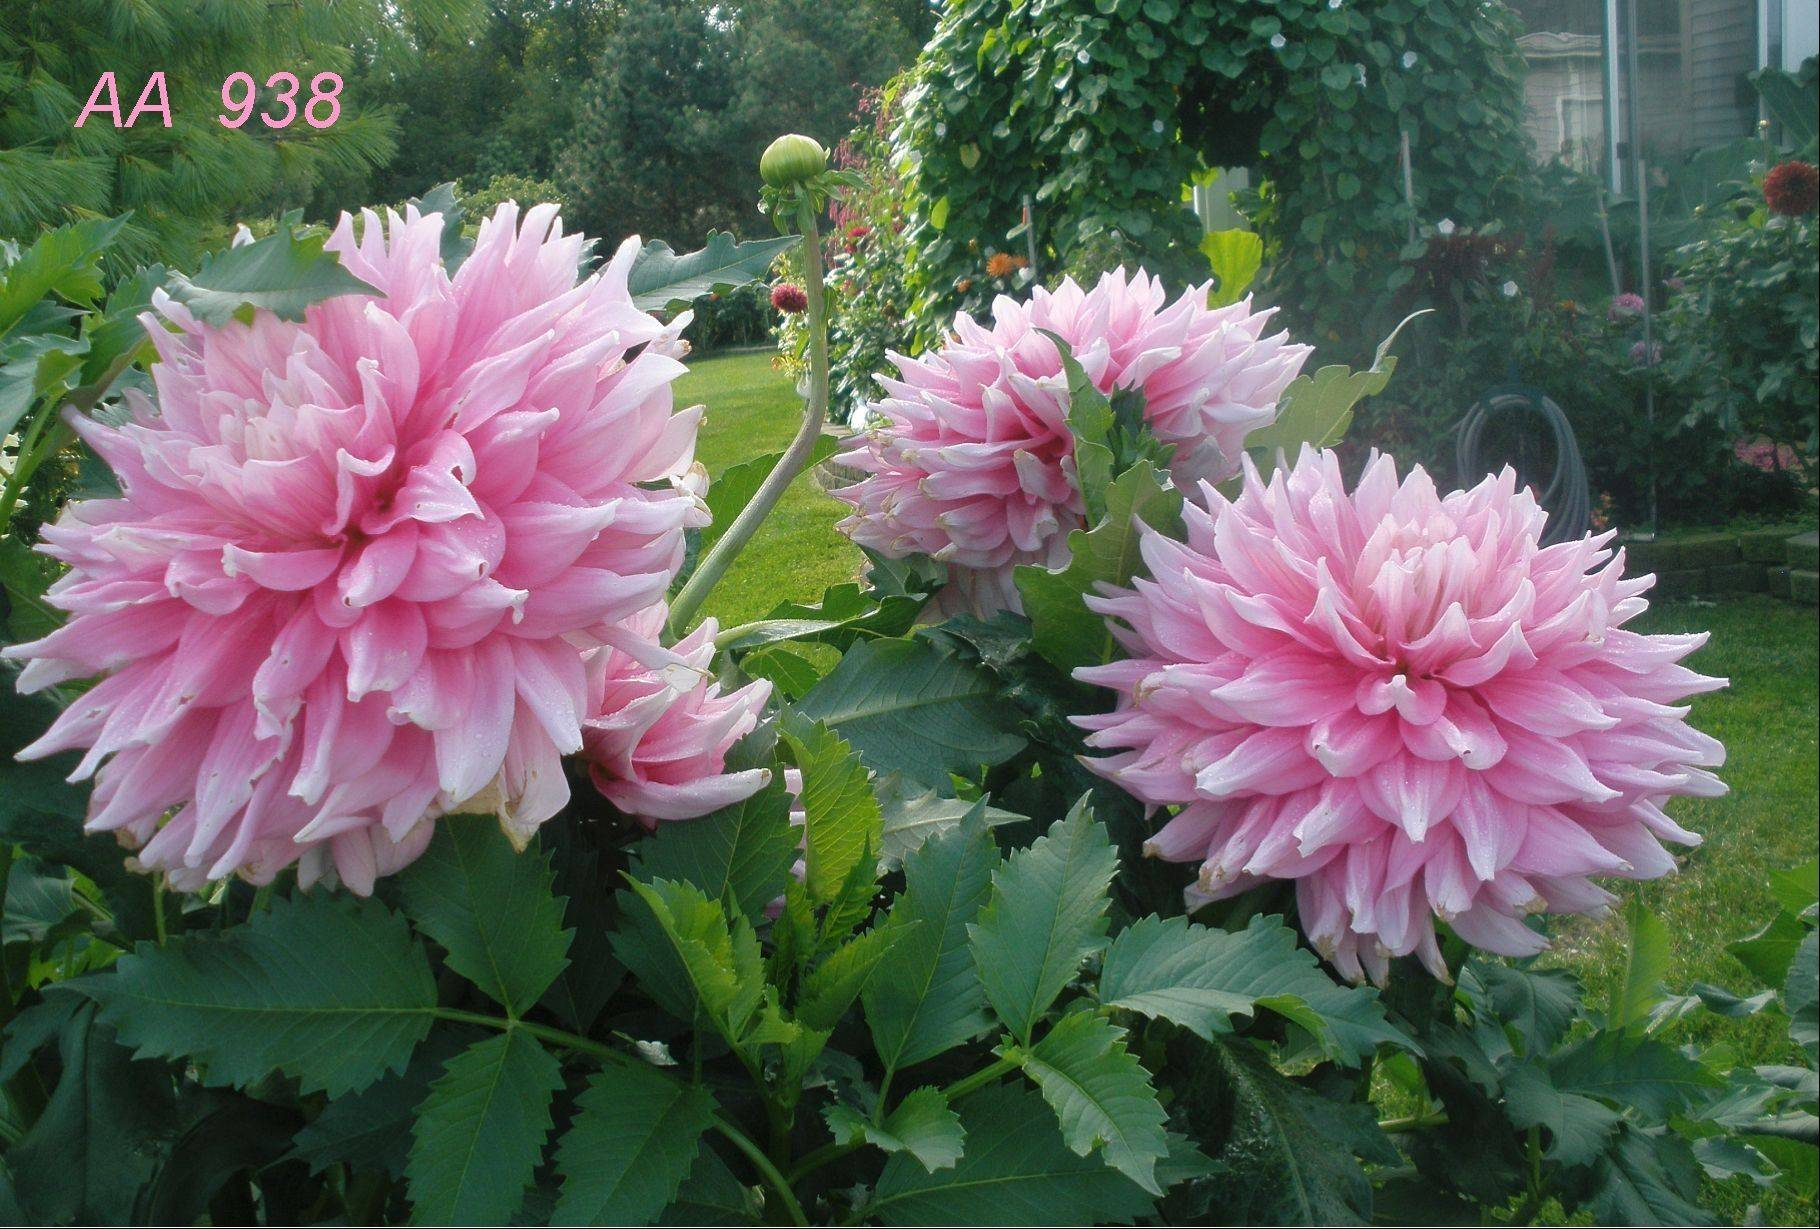 Steve Meggos likes dahlias that grow very large blooms.